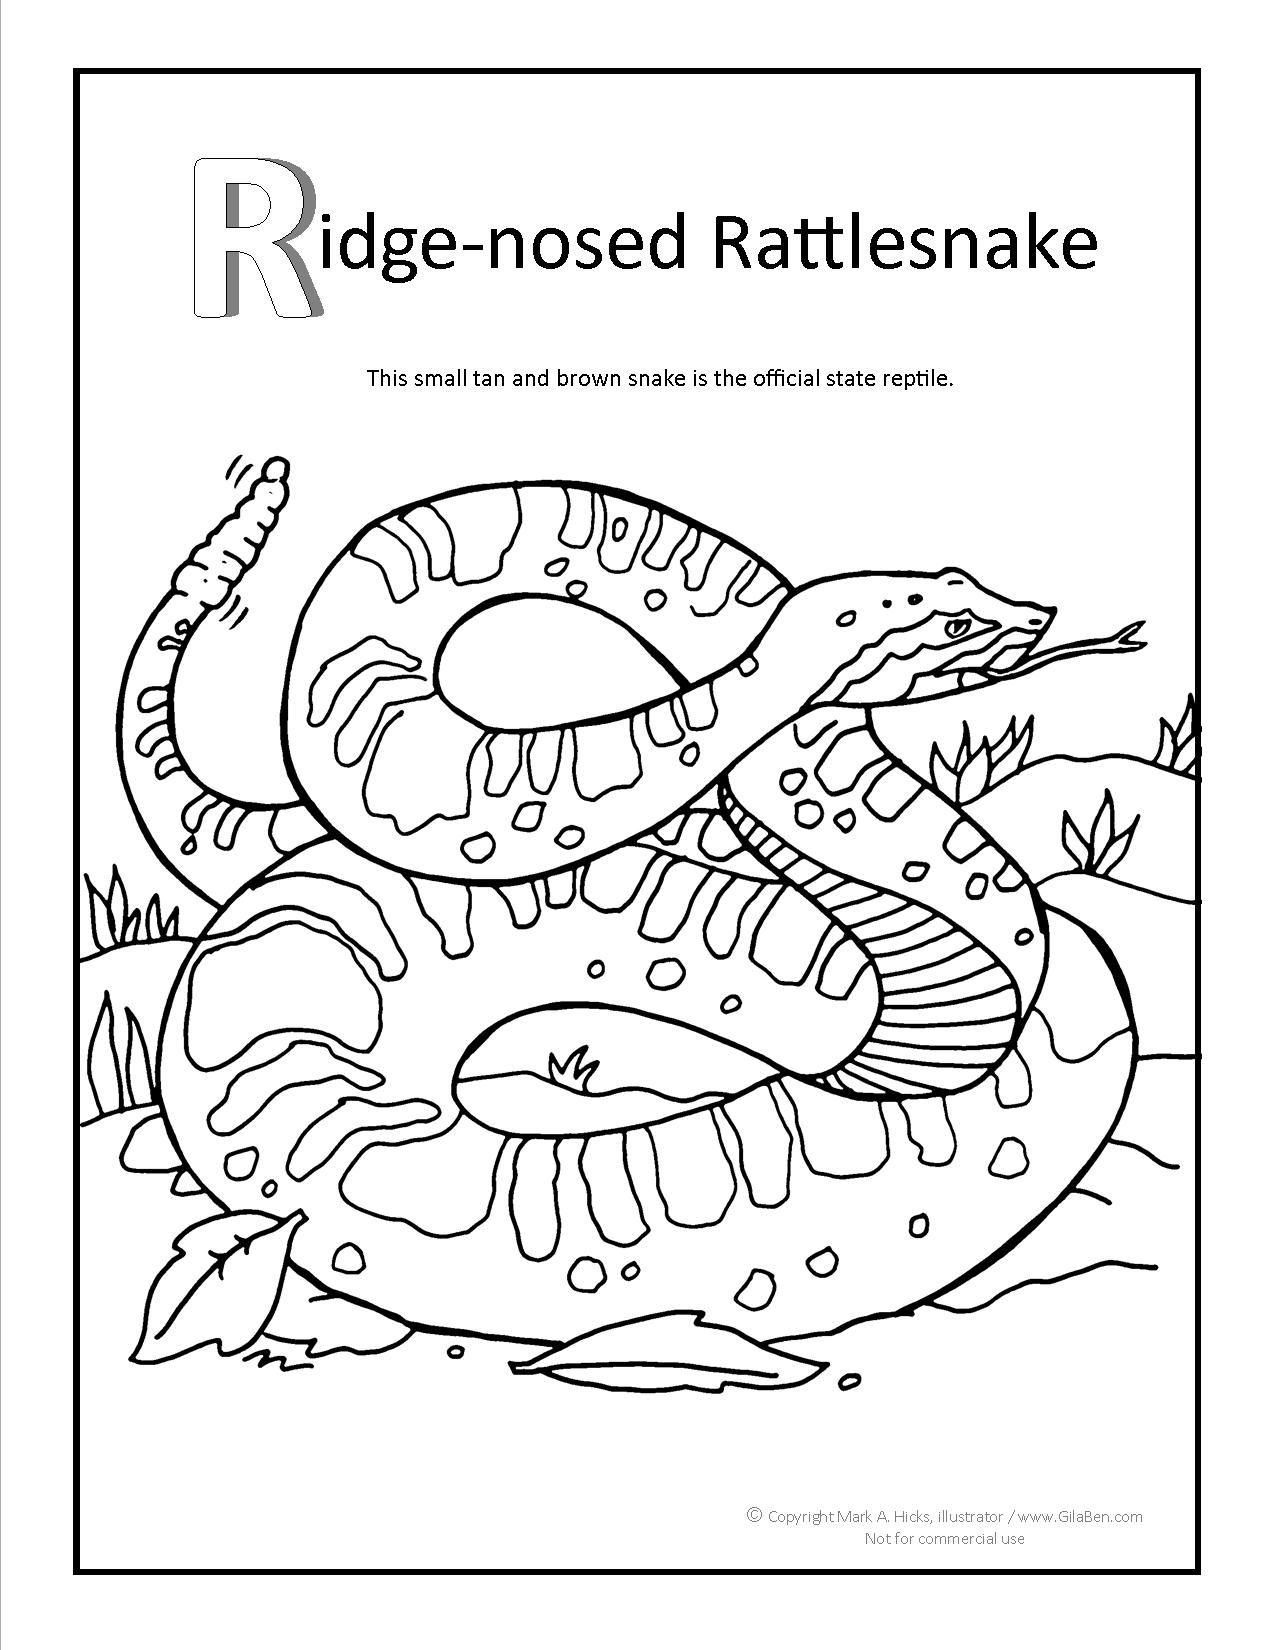 Ridge Nosed Rattlesnake Coloring Page At Gilaben Com Coloring